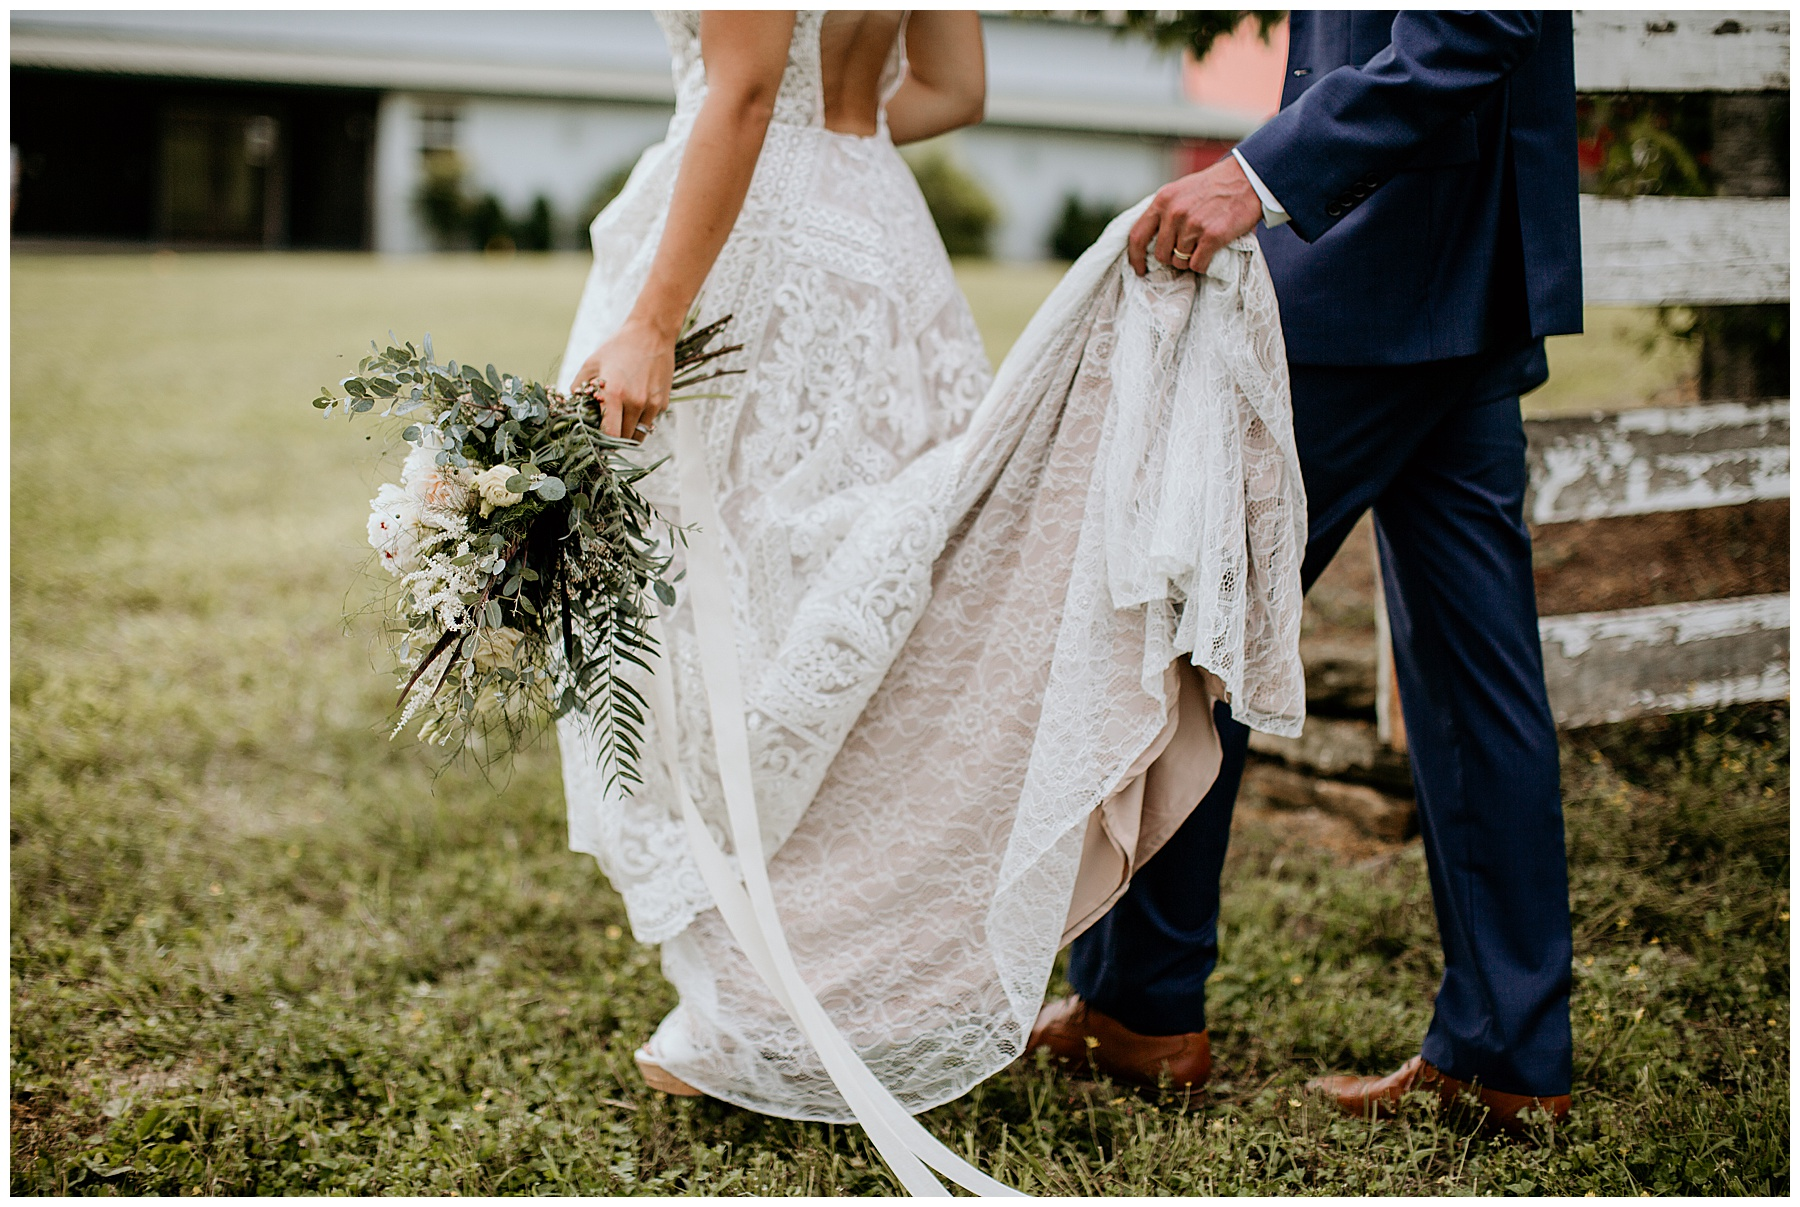 bride and groom walking away after wedding ceremony using wedding day timeline